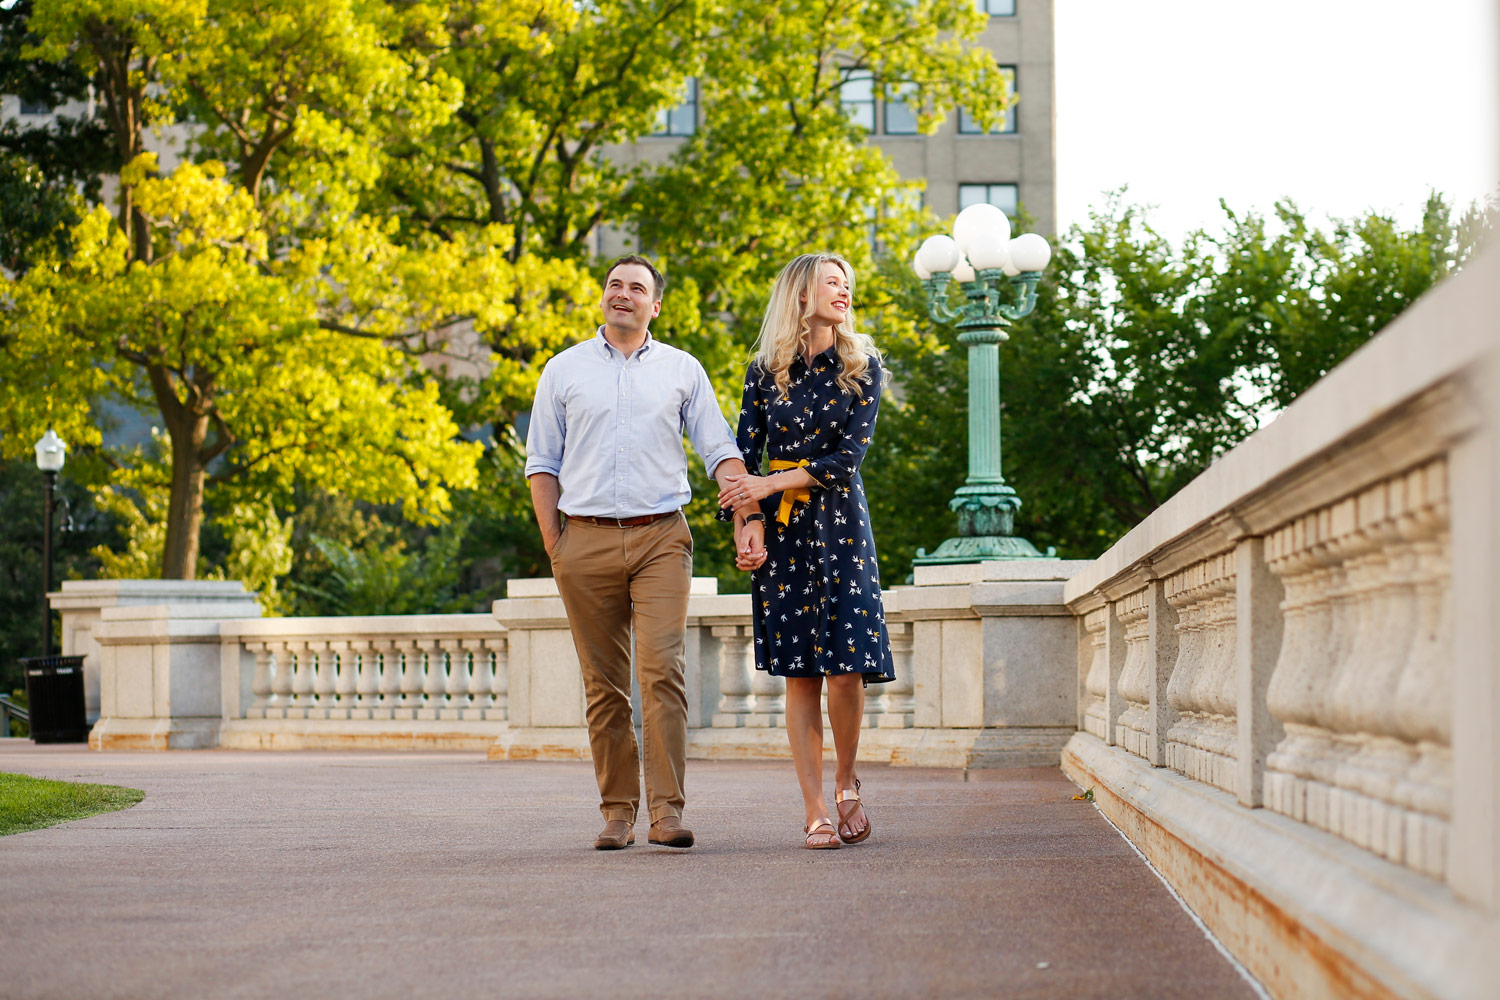 madison-wisconsin-wi-capital-capitol-building-engagement-session-ruthie-hauge-photography.jpg